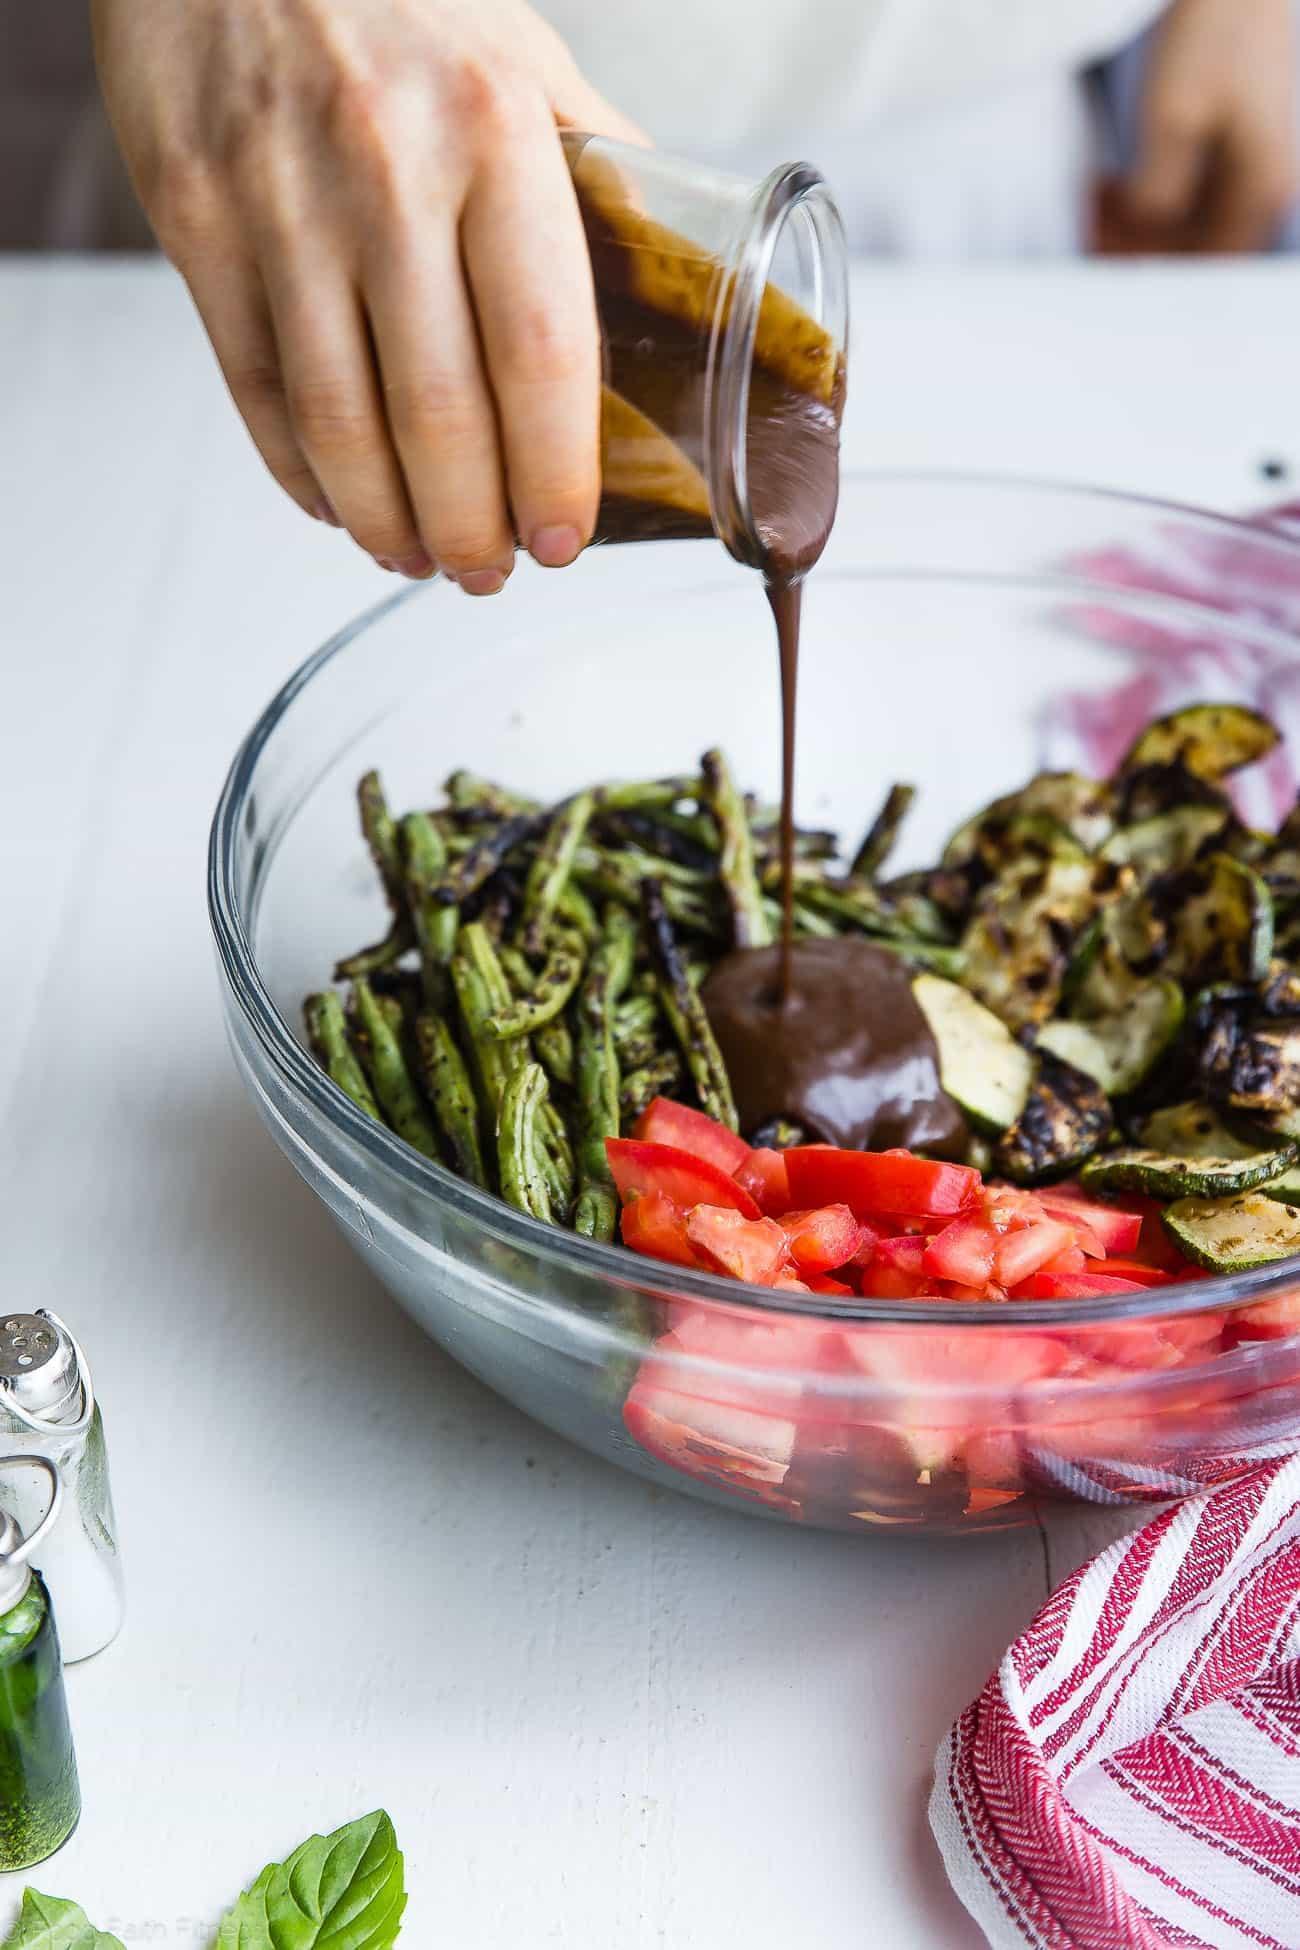 Pouring balsamic vinaigrette on grilled zucchini and green bean salad. Recipe on Foodfaithfitness.com